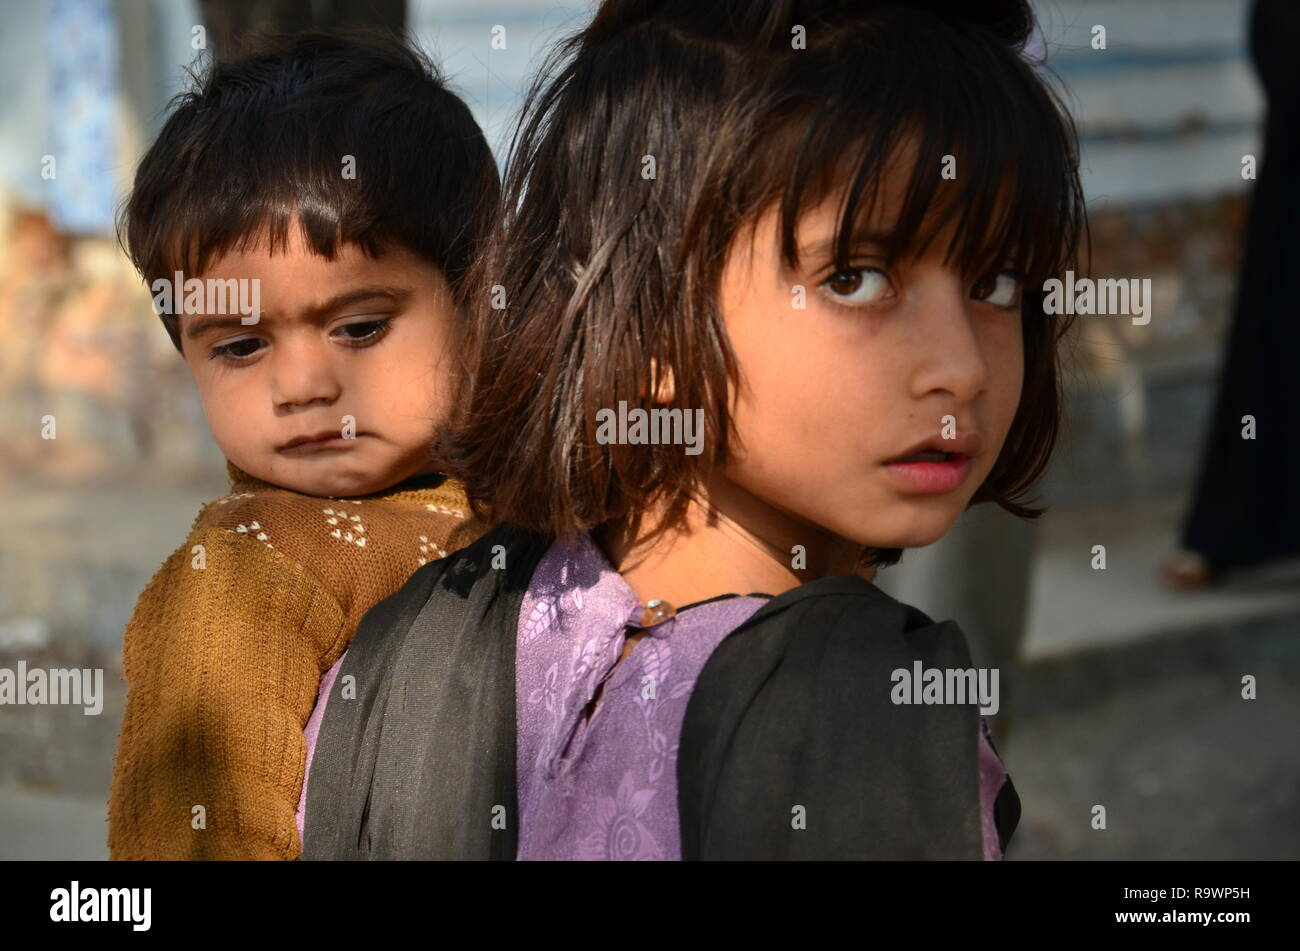 Children in Pakistan - Stock Image